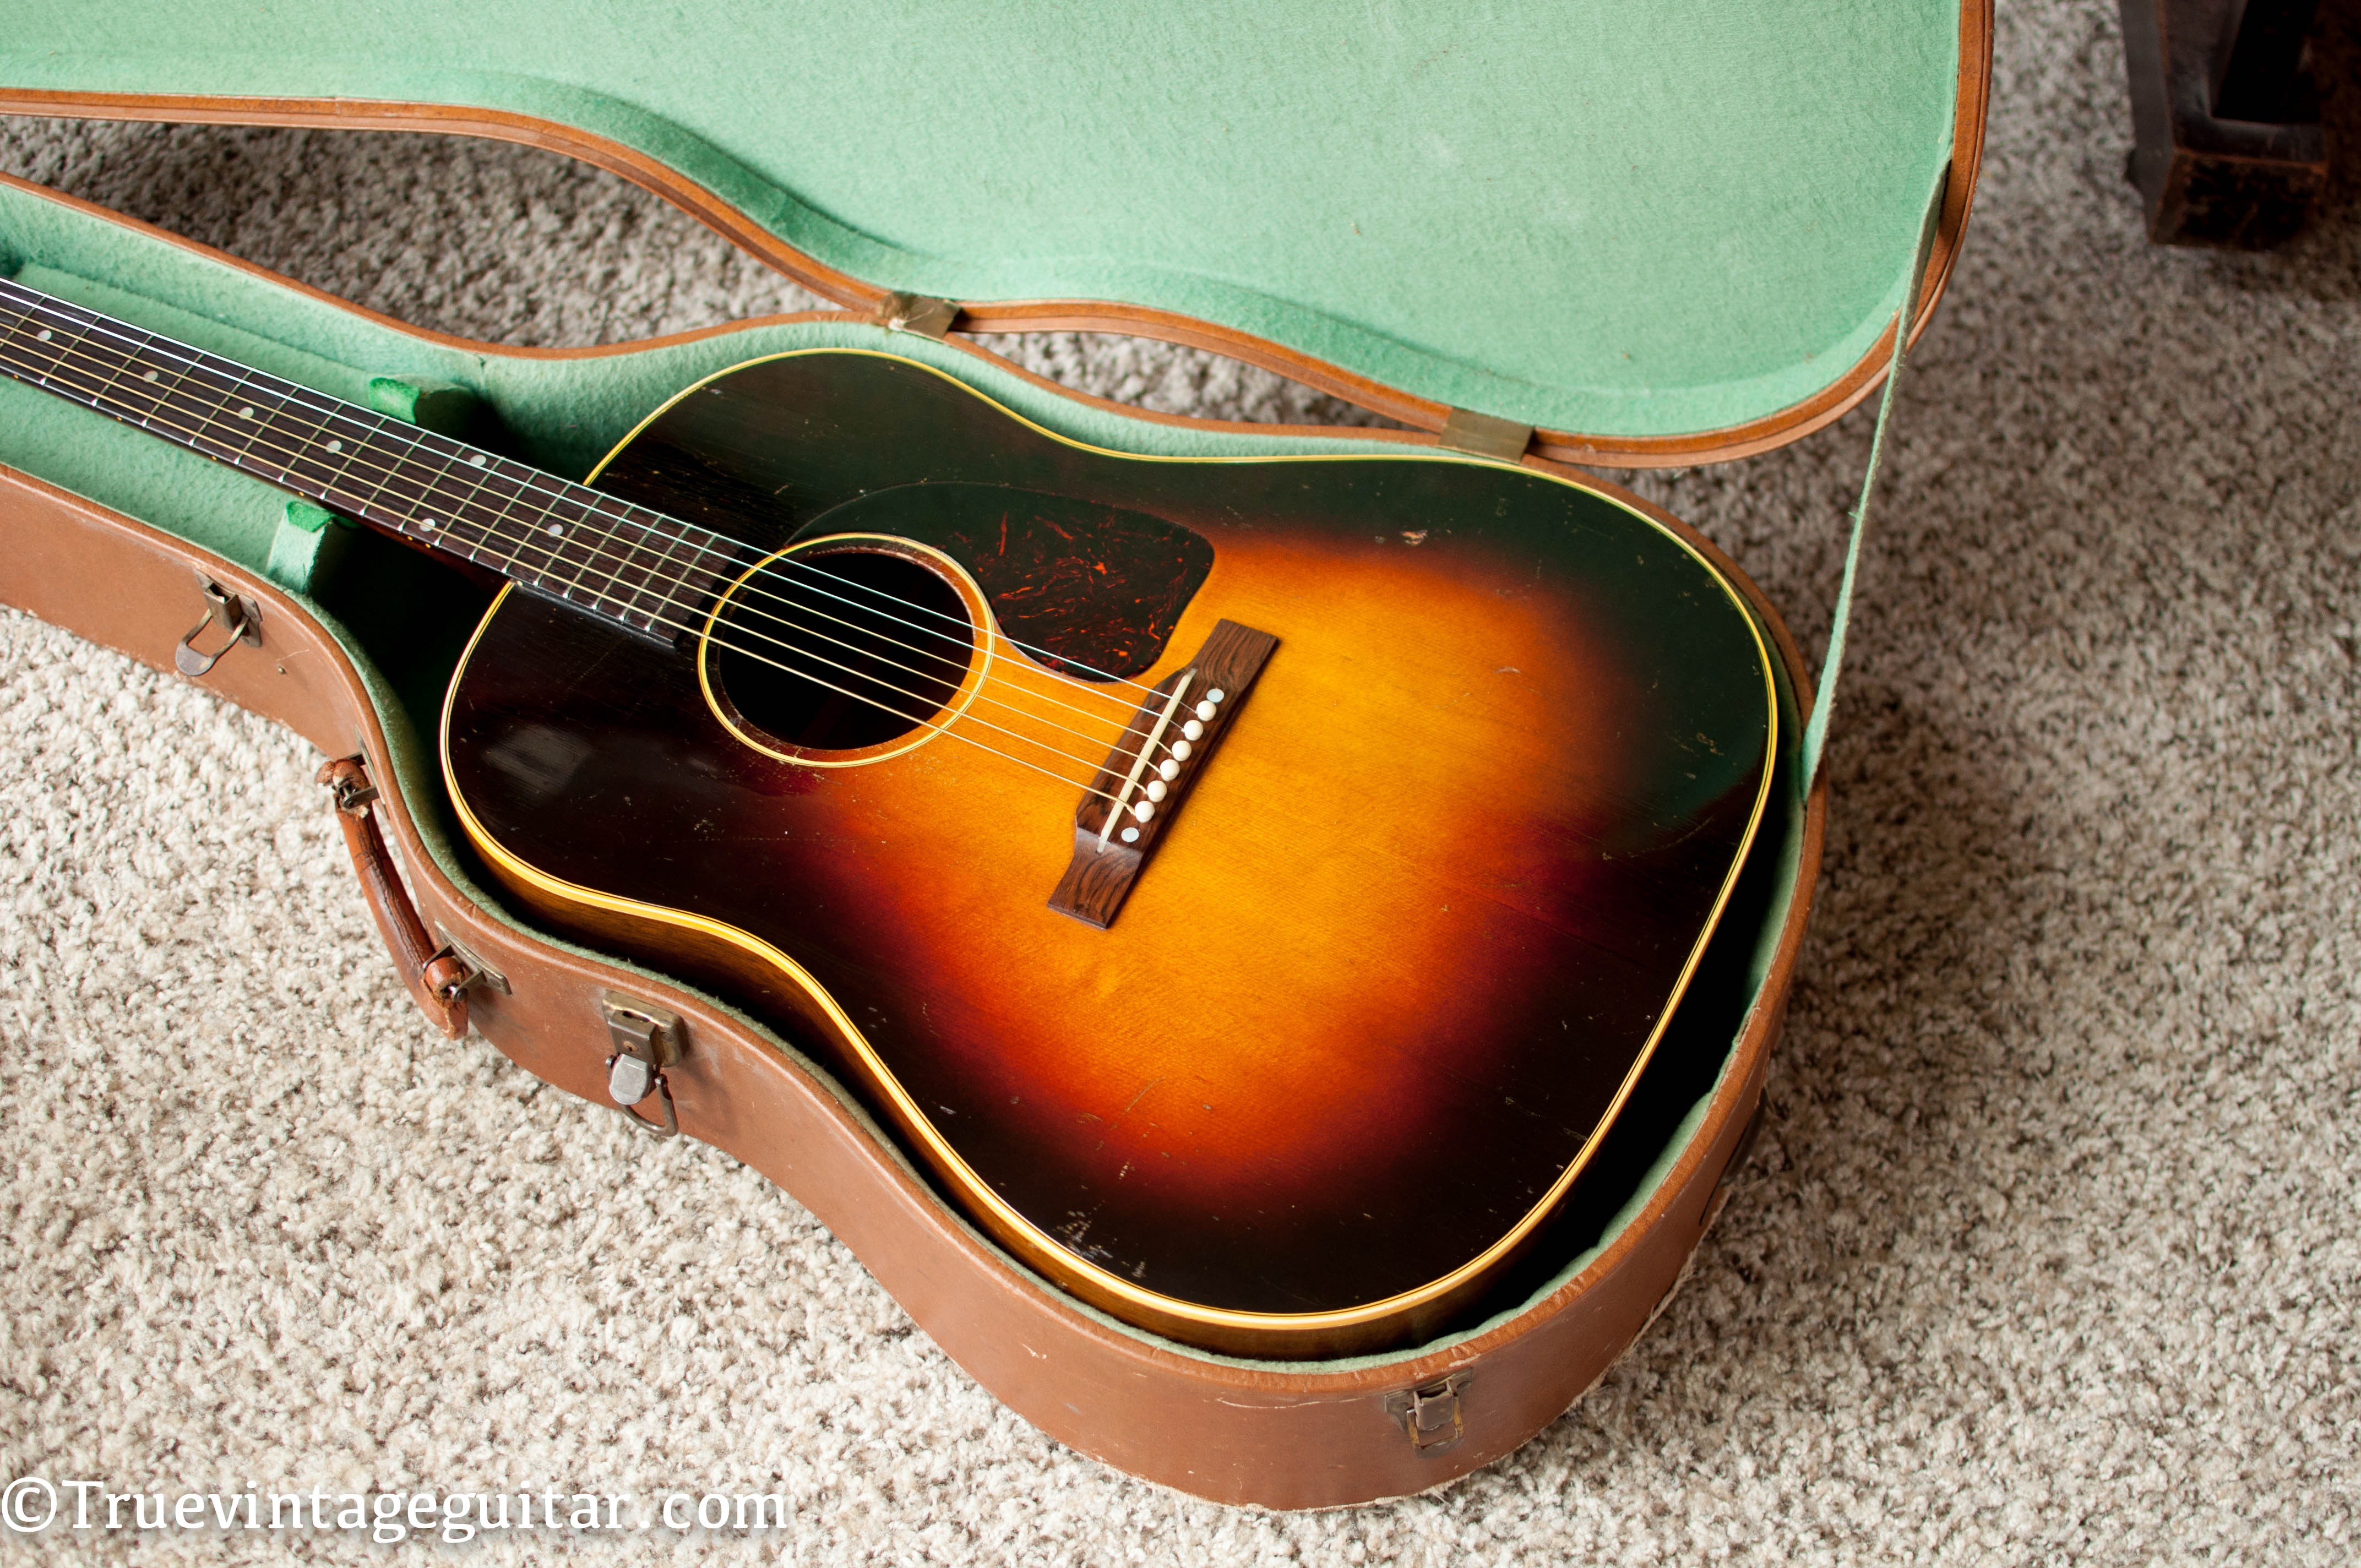 1950s Gibson acoustic guitar